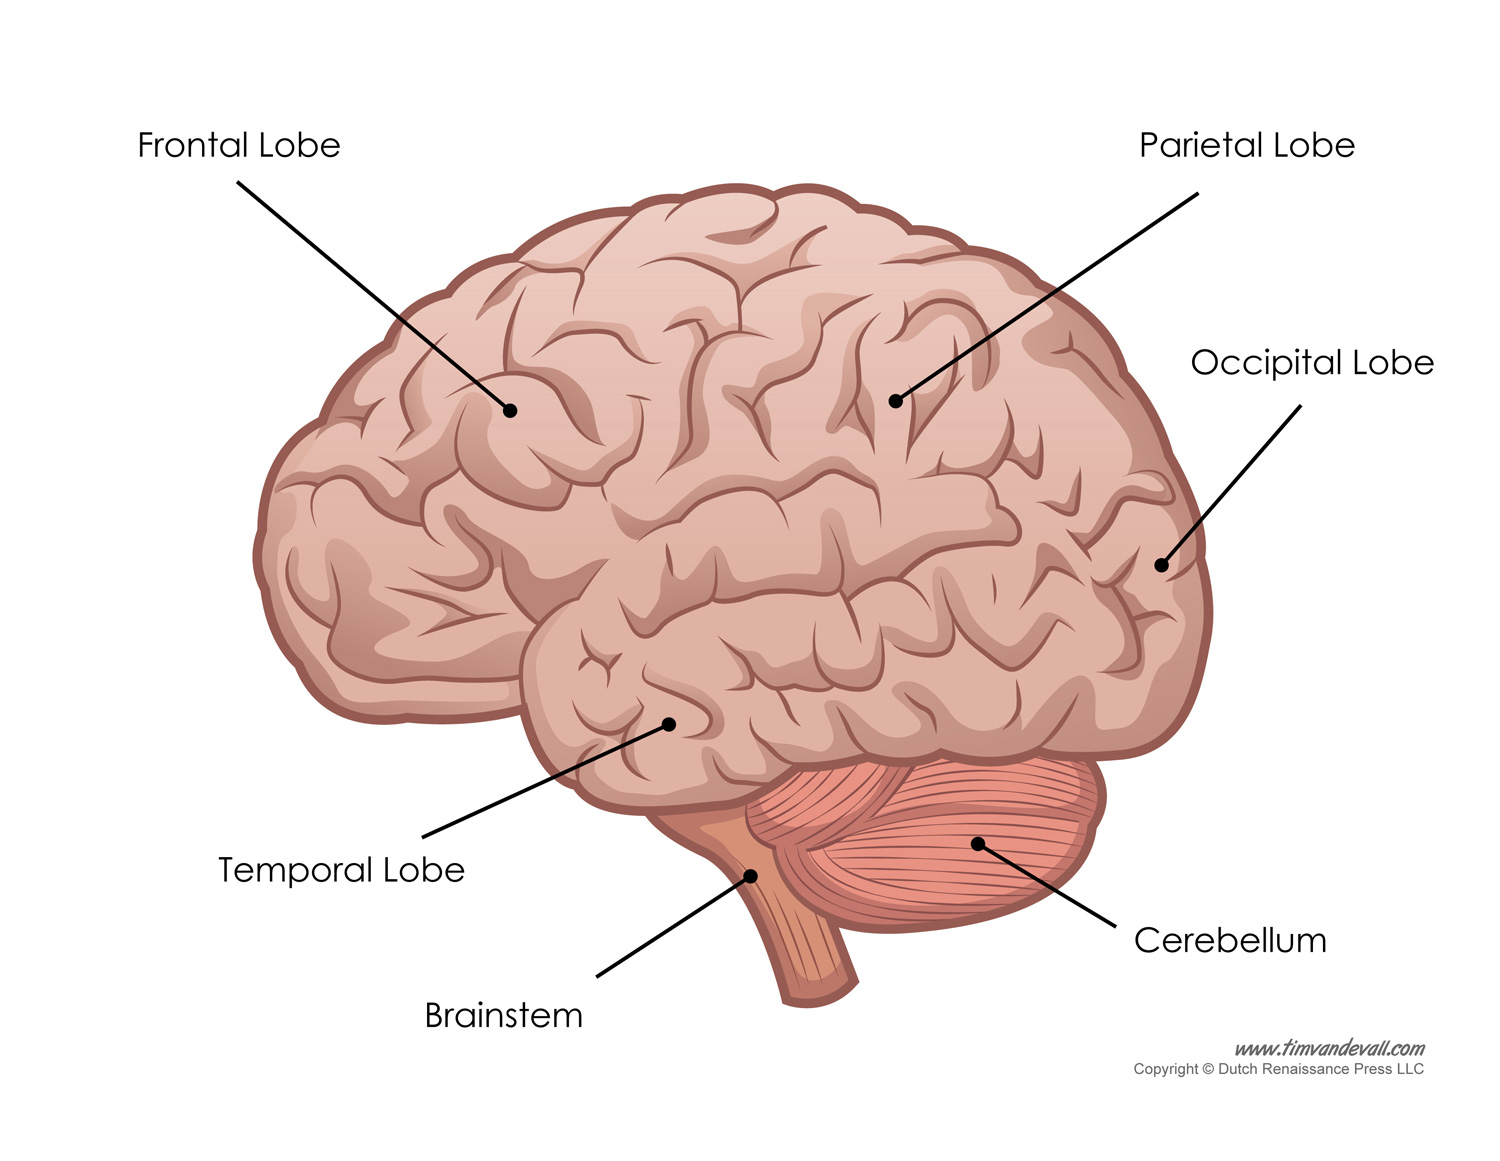 brain diagram pons shunt trip wiring drawing of the with labels at getdrawings com free for 1500x1161 human